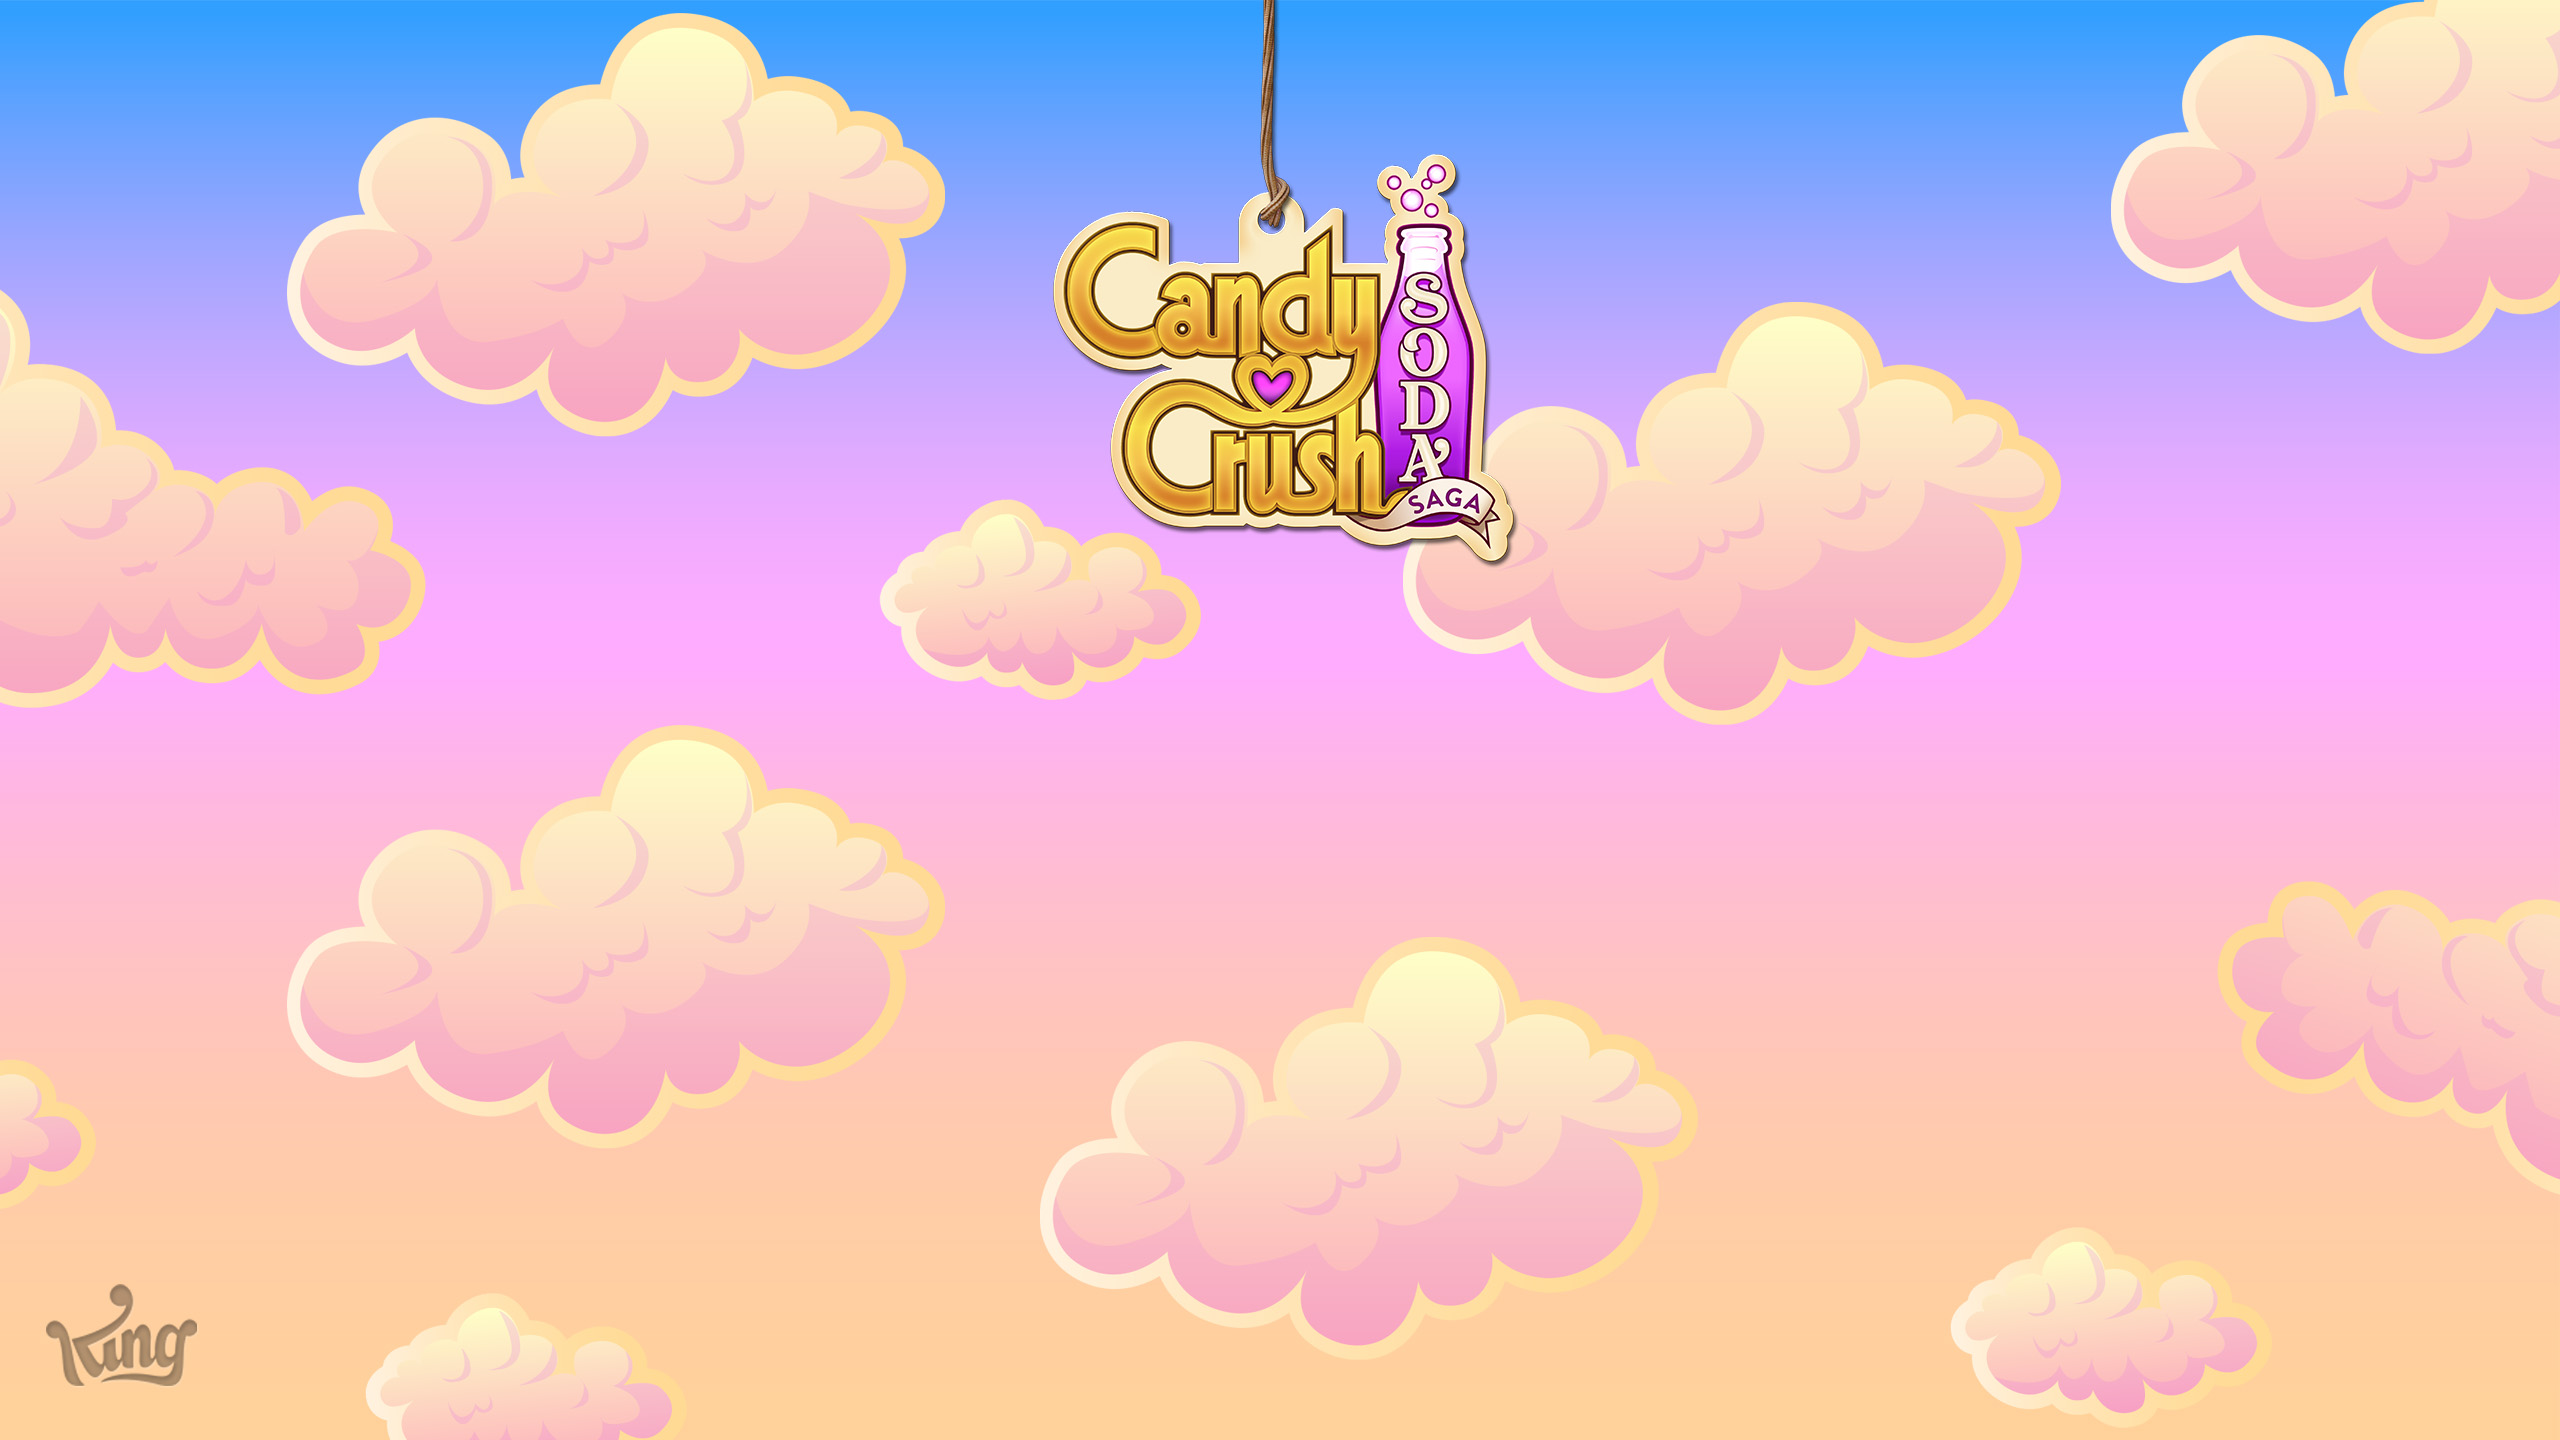 Candy Crush Saga Facebook Login